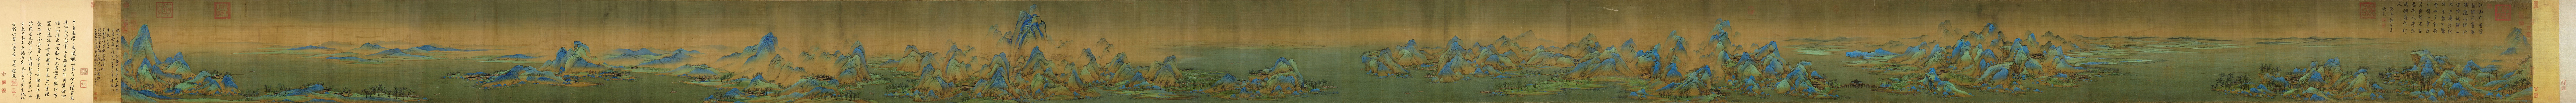 Wang Ximeng: One Thousand Li of Rivers and Mountains